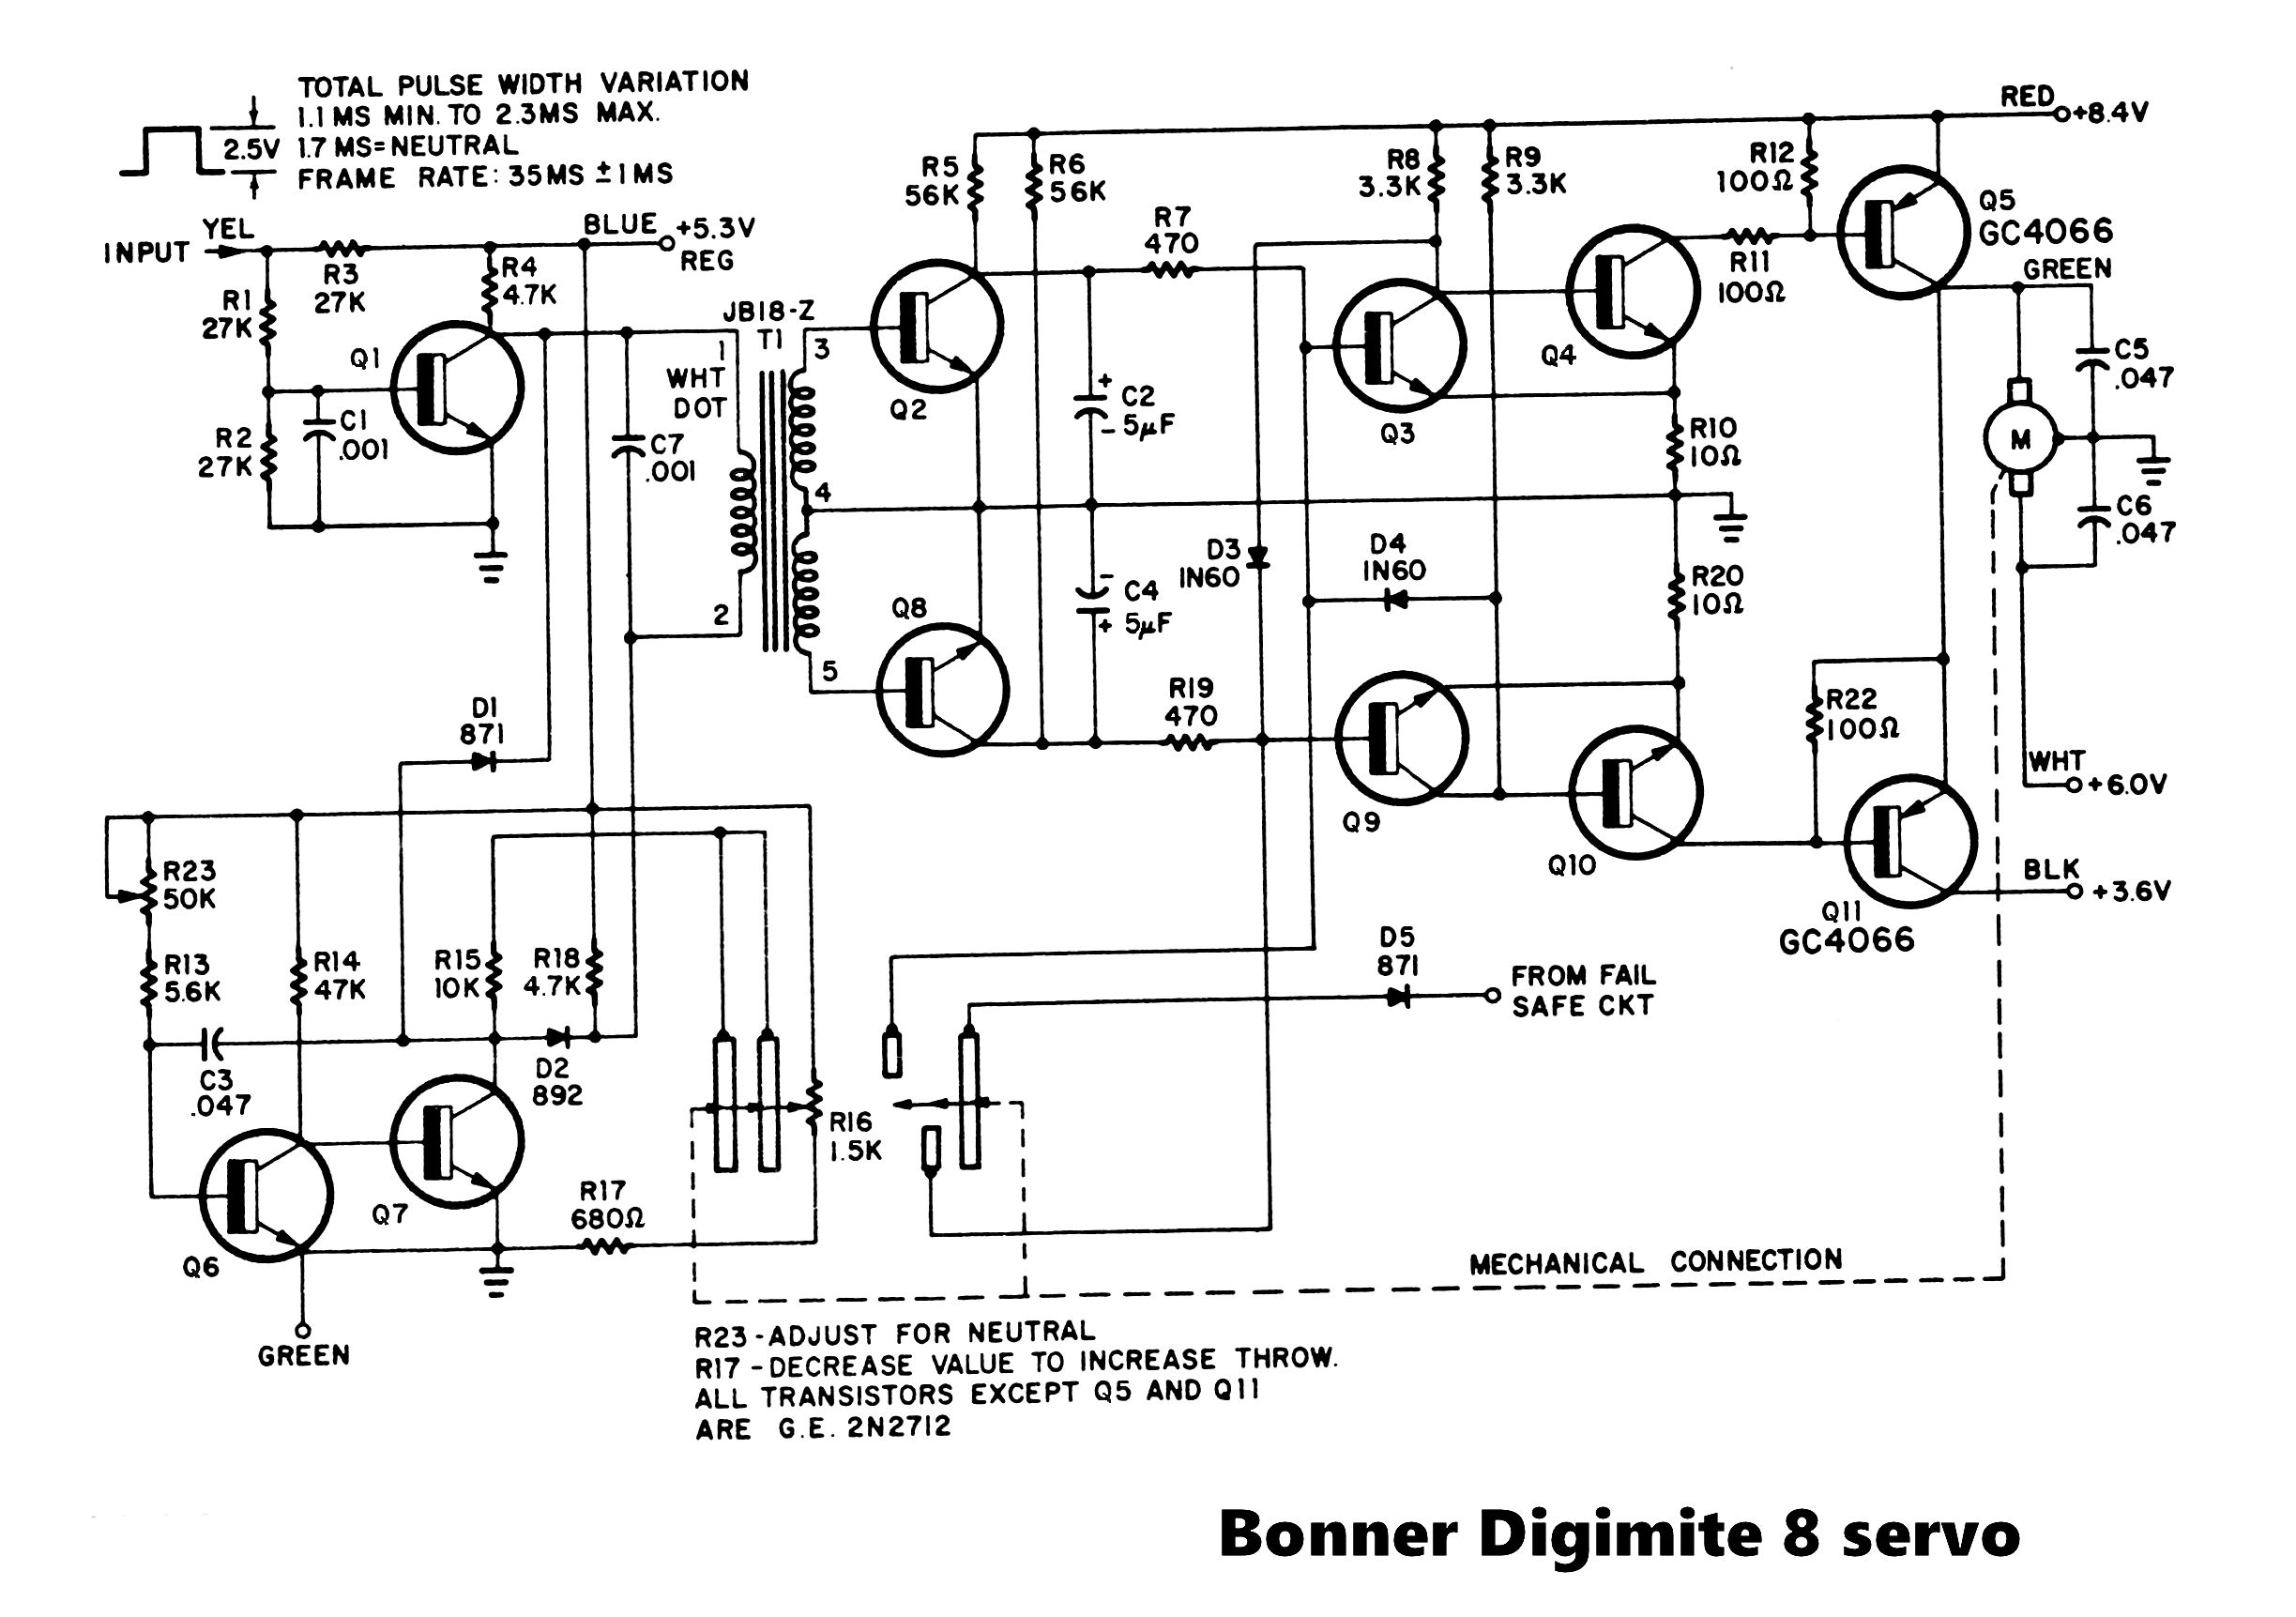 Index Of Files Bonner Bonner Digimite